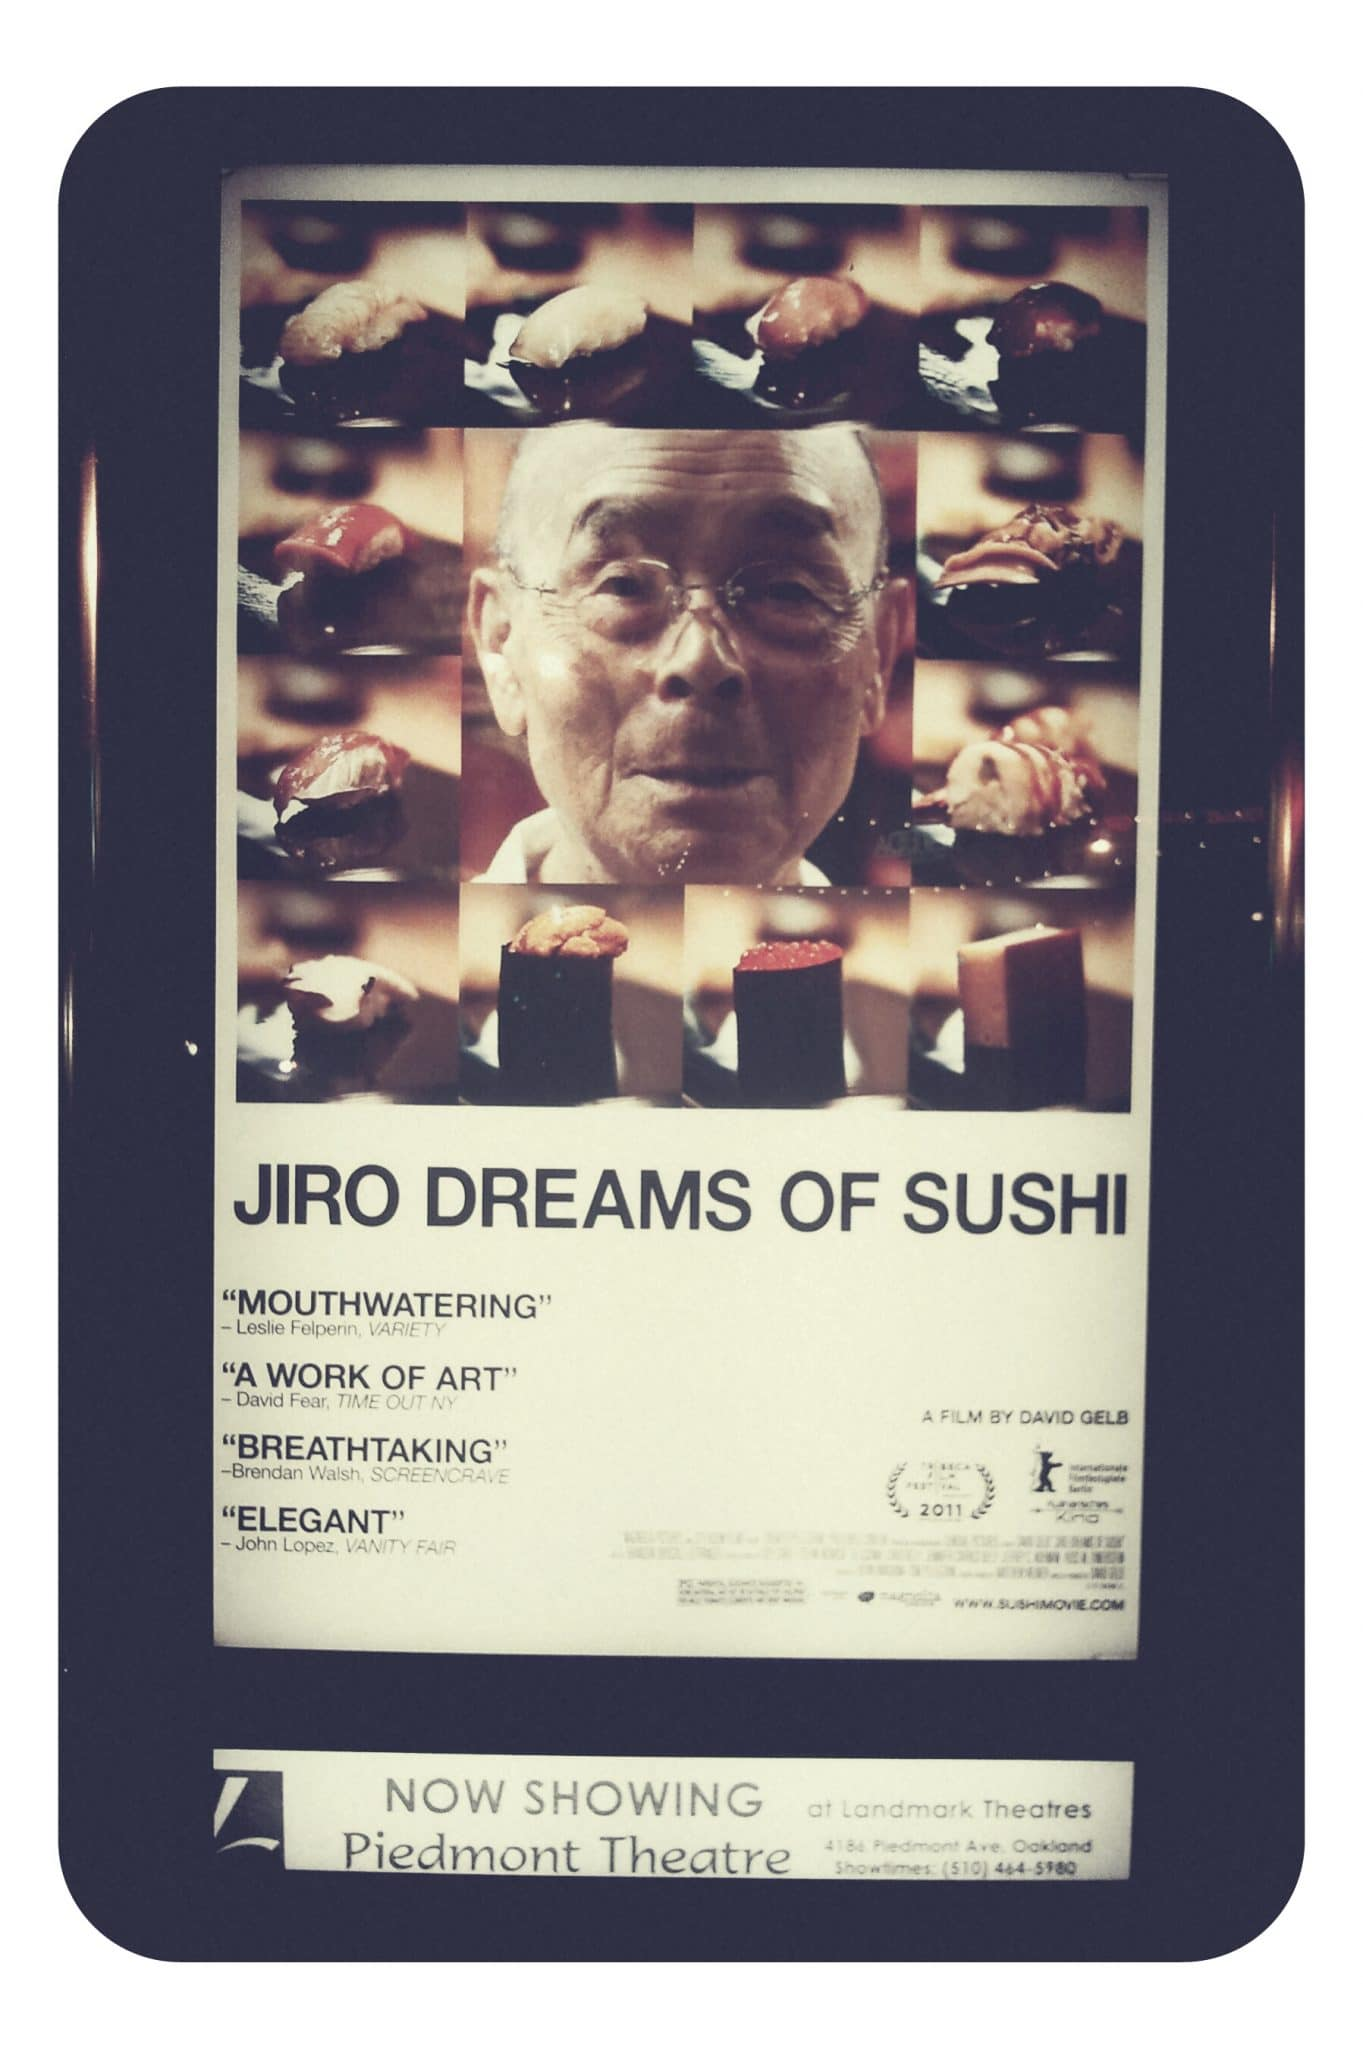 food in cinema, movie about sushi